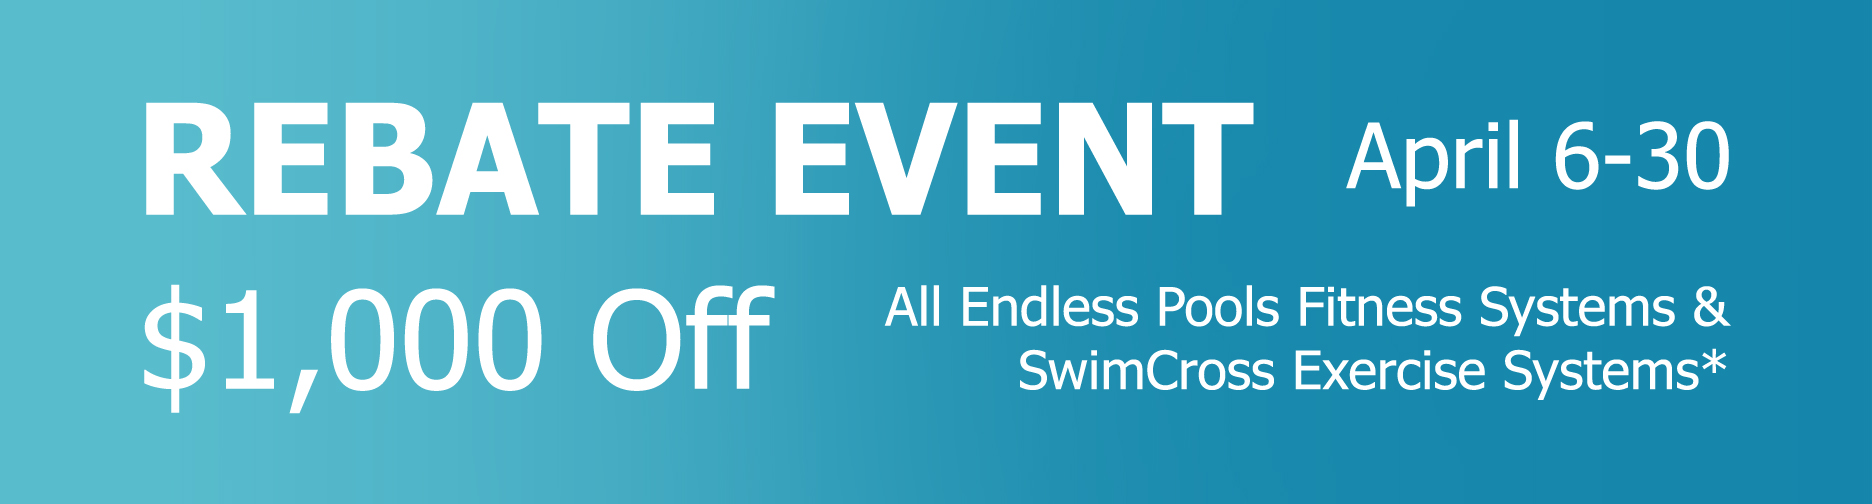 Endless Pools Fitness System